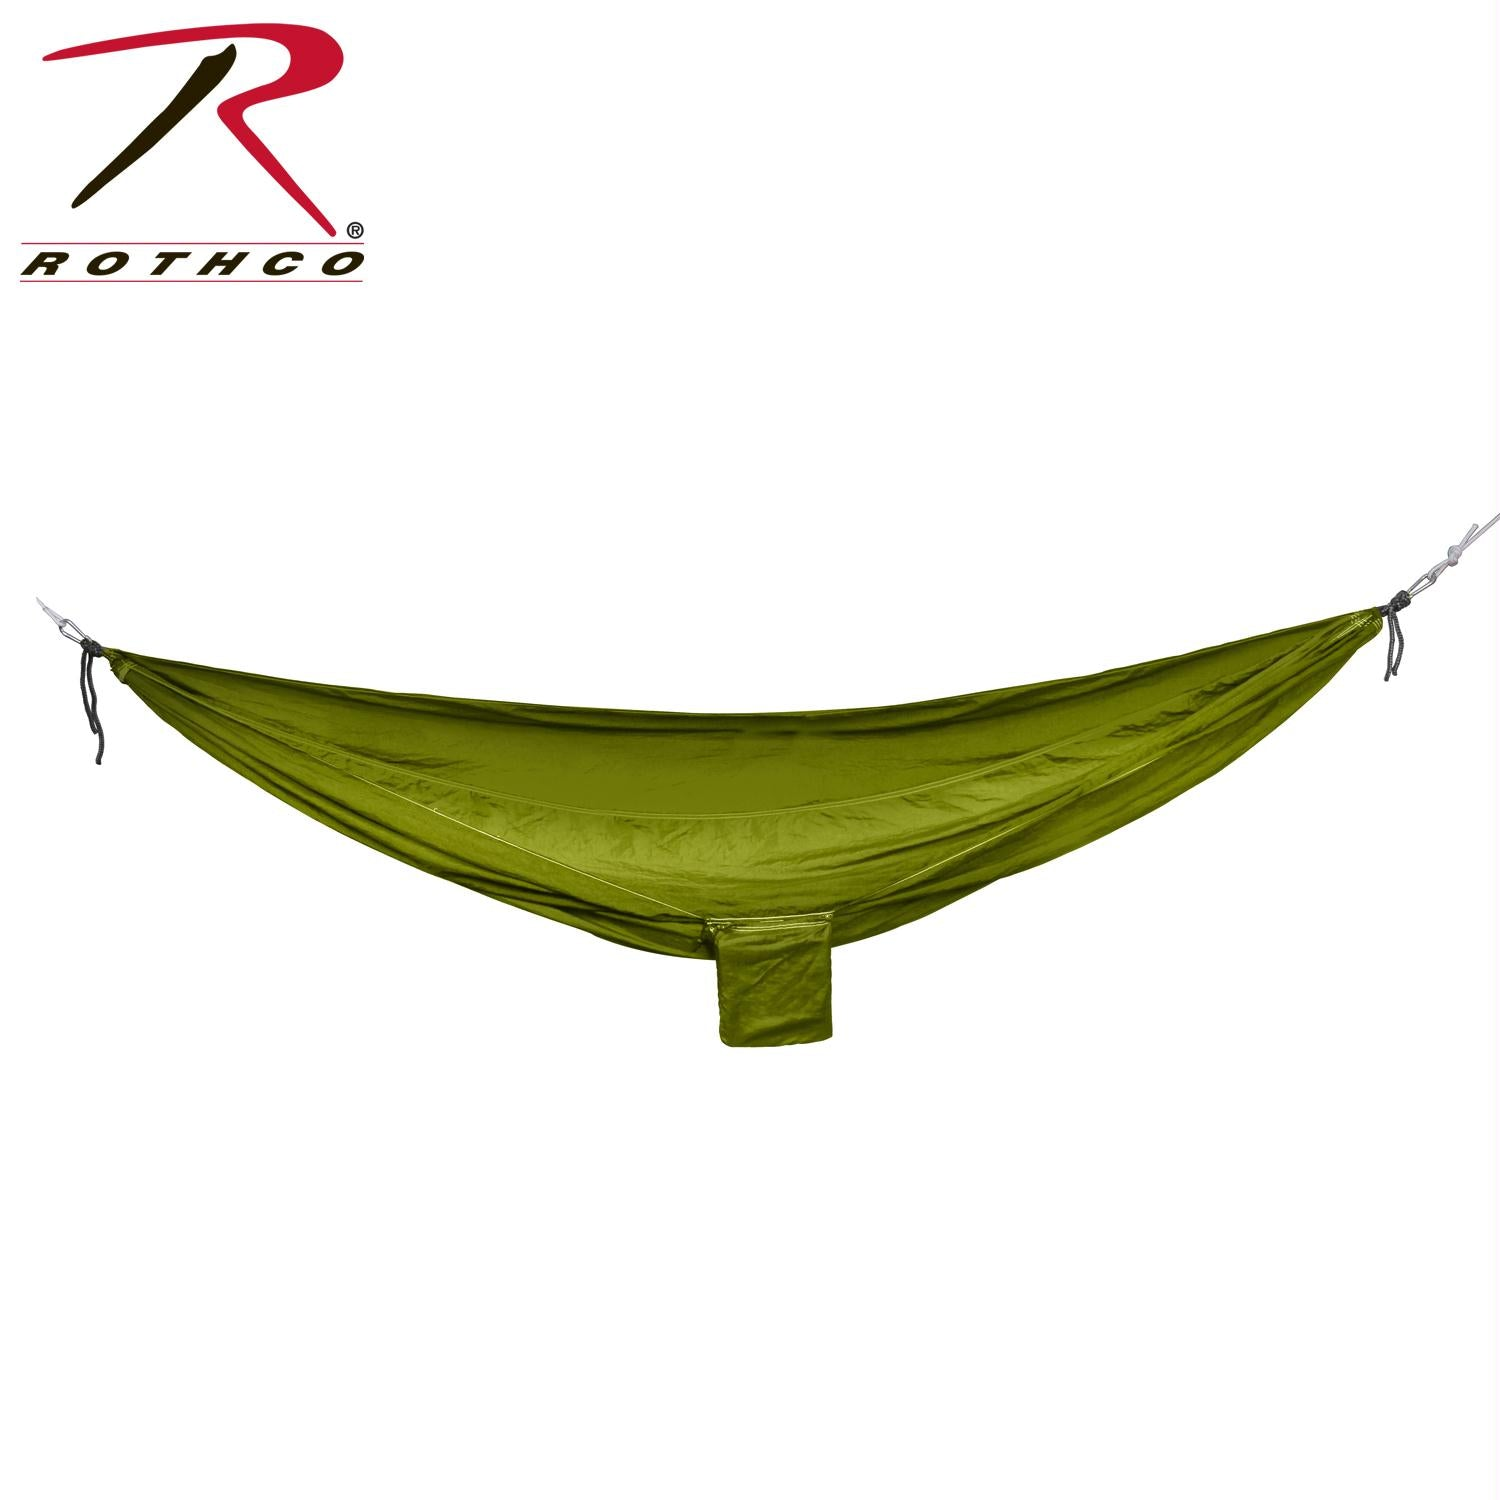 Rothco Lightweight Packable Hammock - Olive Drab